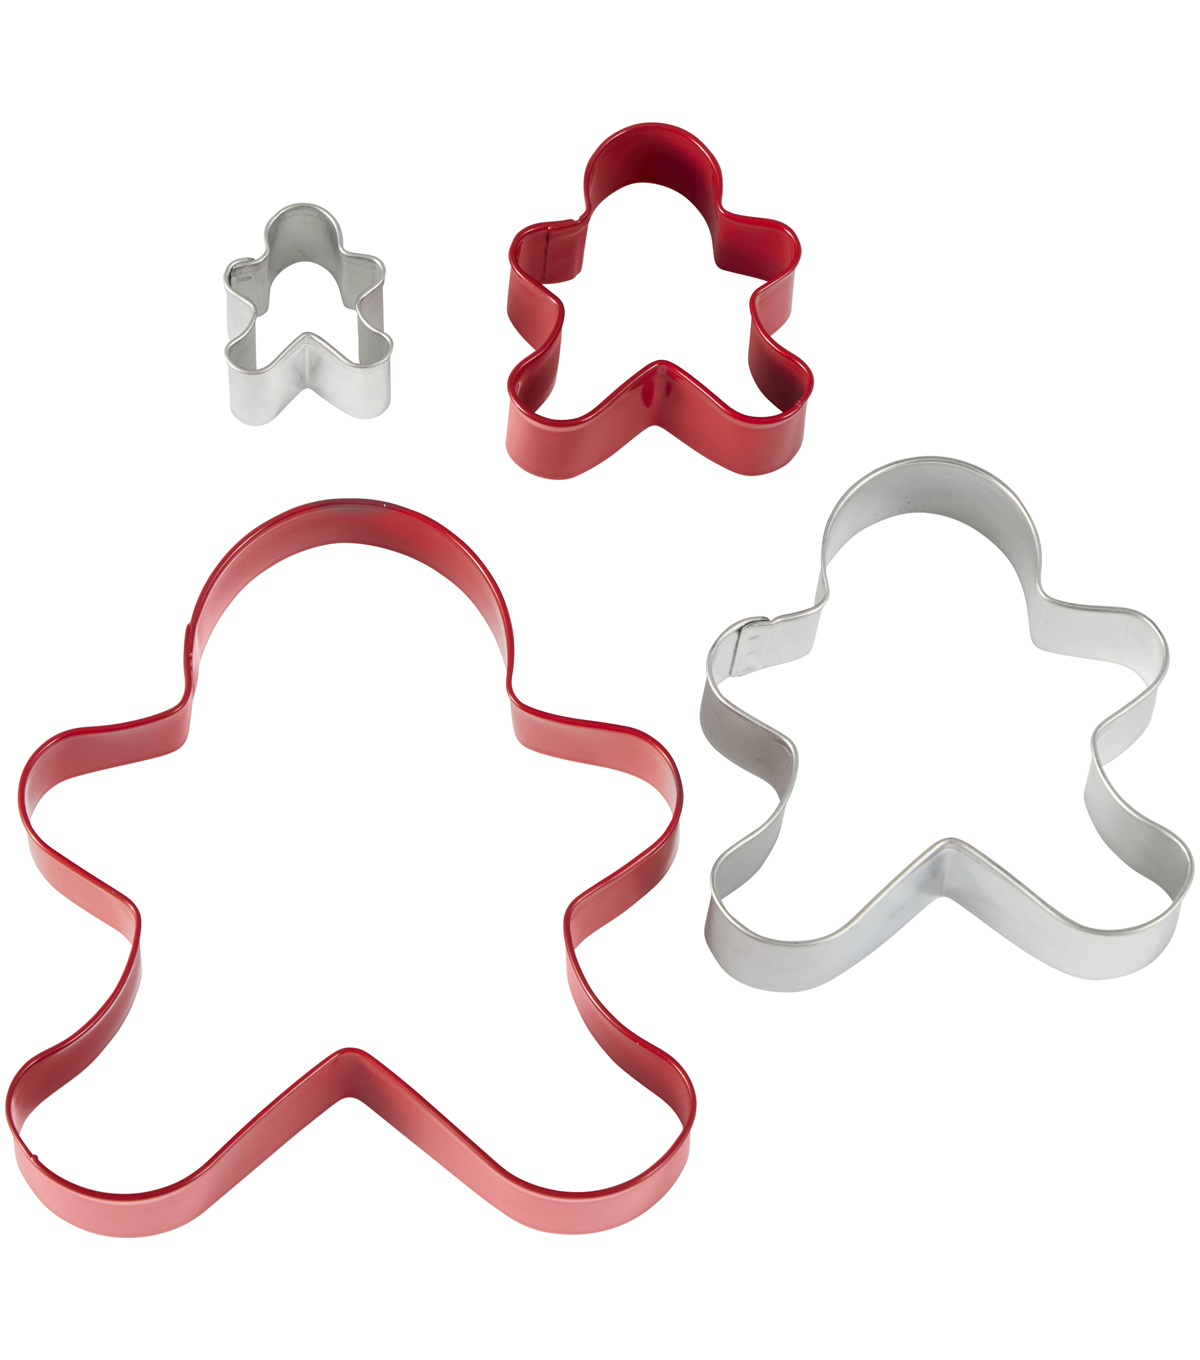 Handmade Holiday Baking Wilton 4 pk Metal Gingerbread Cookie Cutters